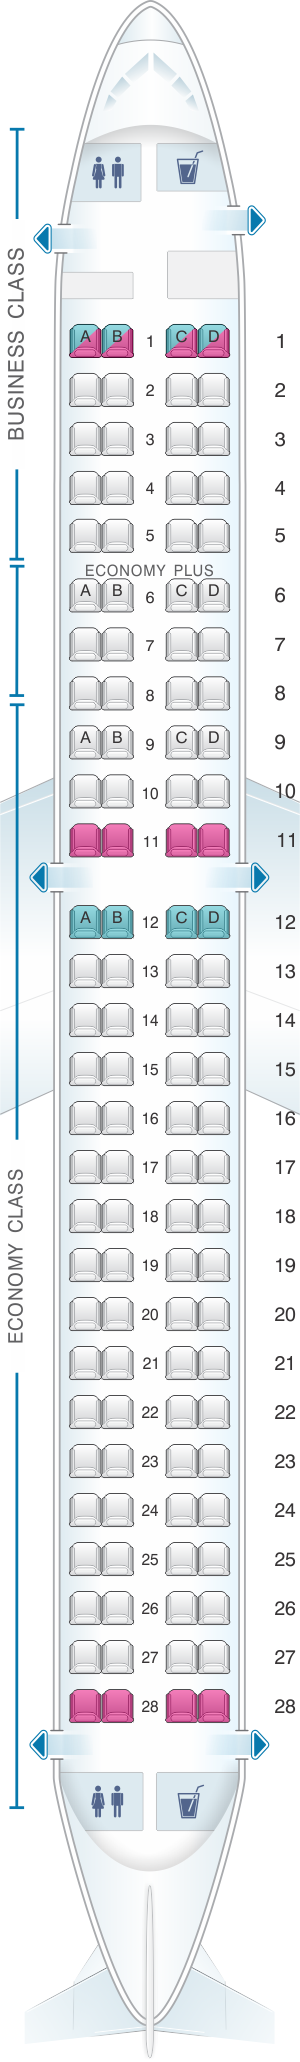 Seat map for LOT Polish Airlines Embraer 195